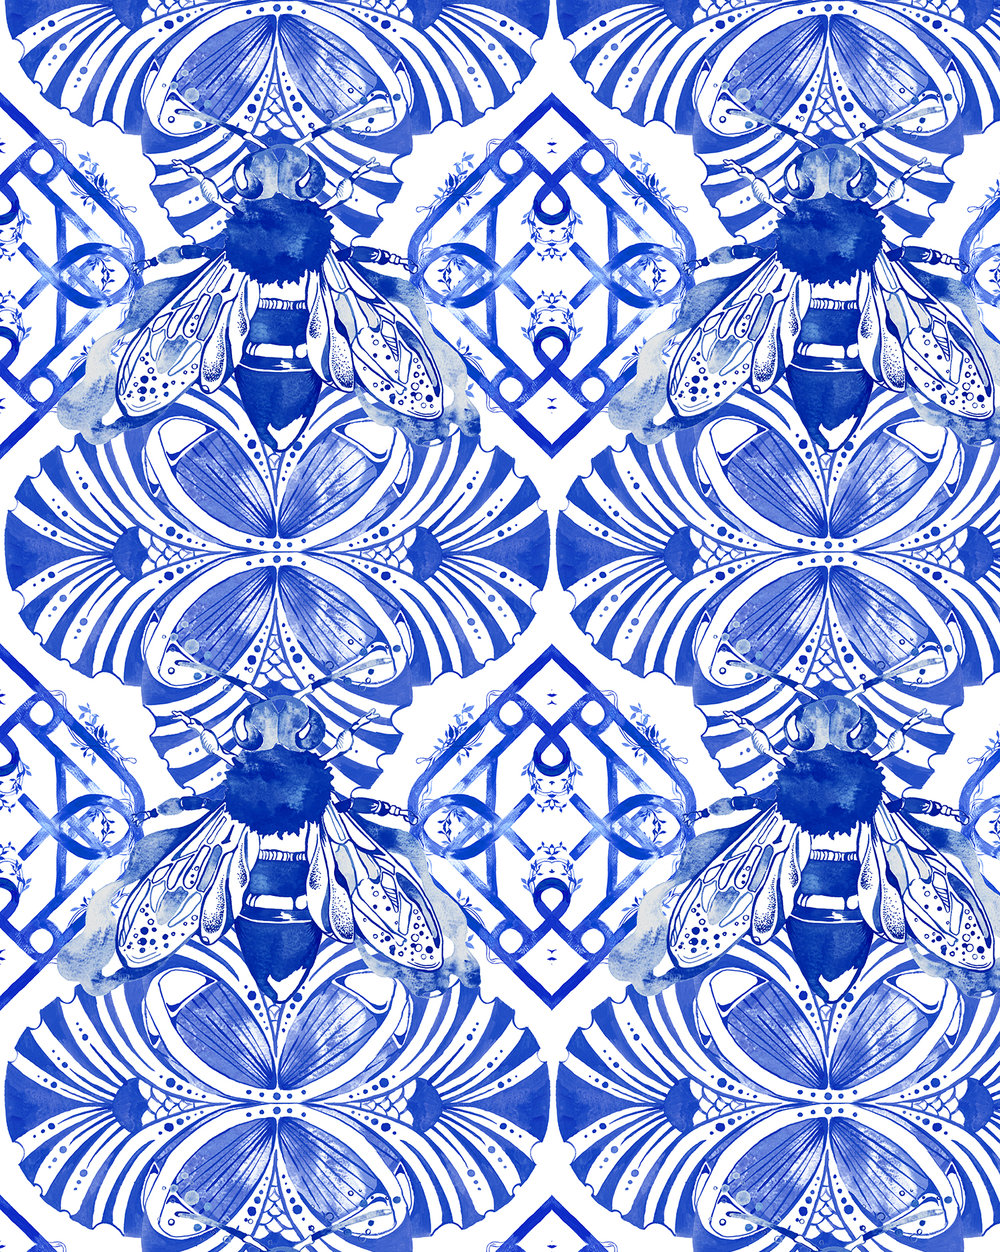 PommeChan_Bee Tiles Pattern1 copy.jpg